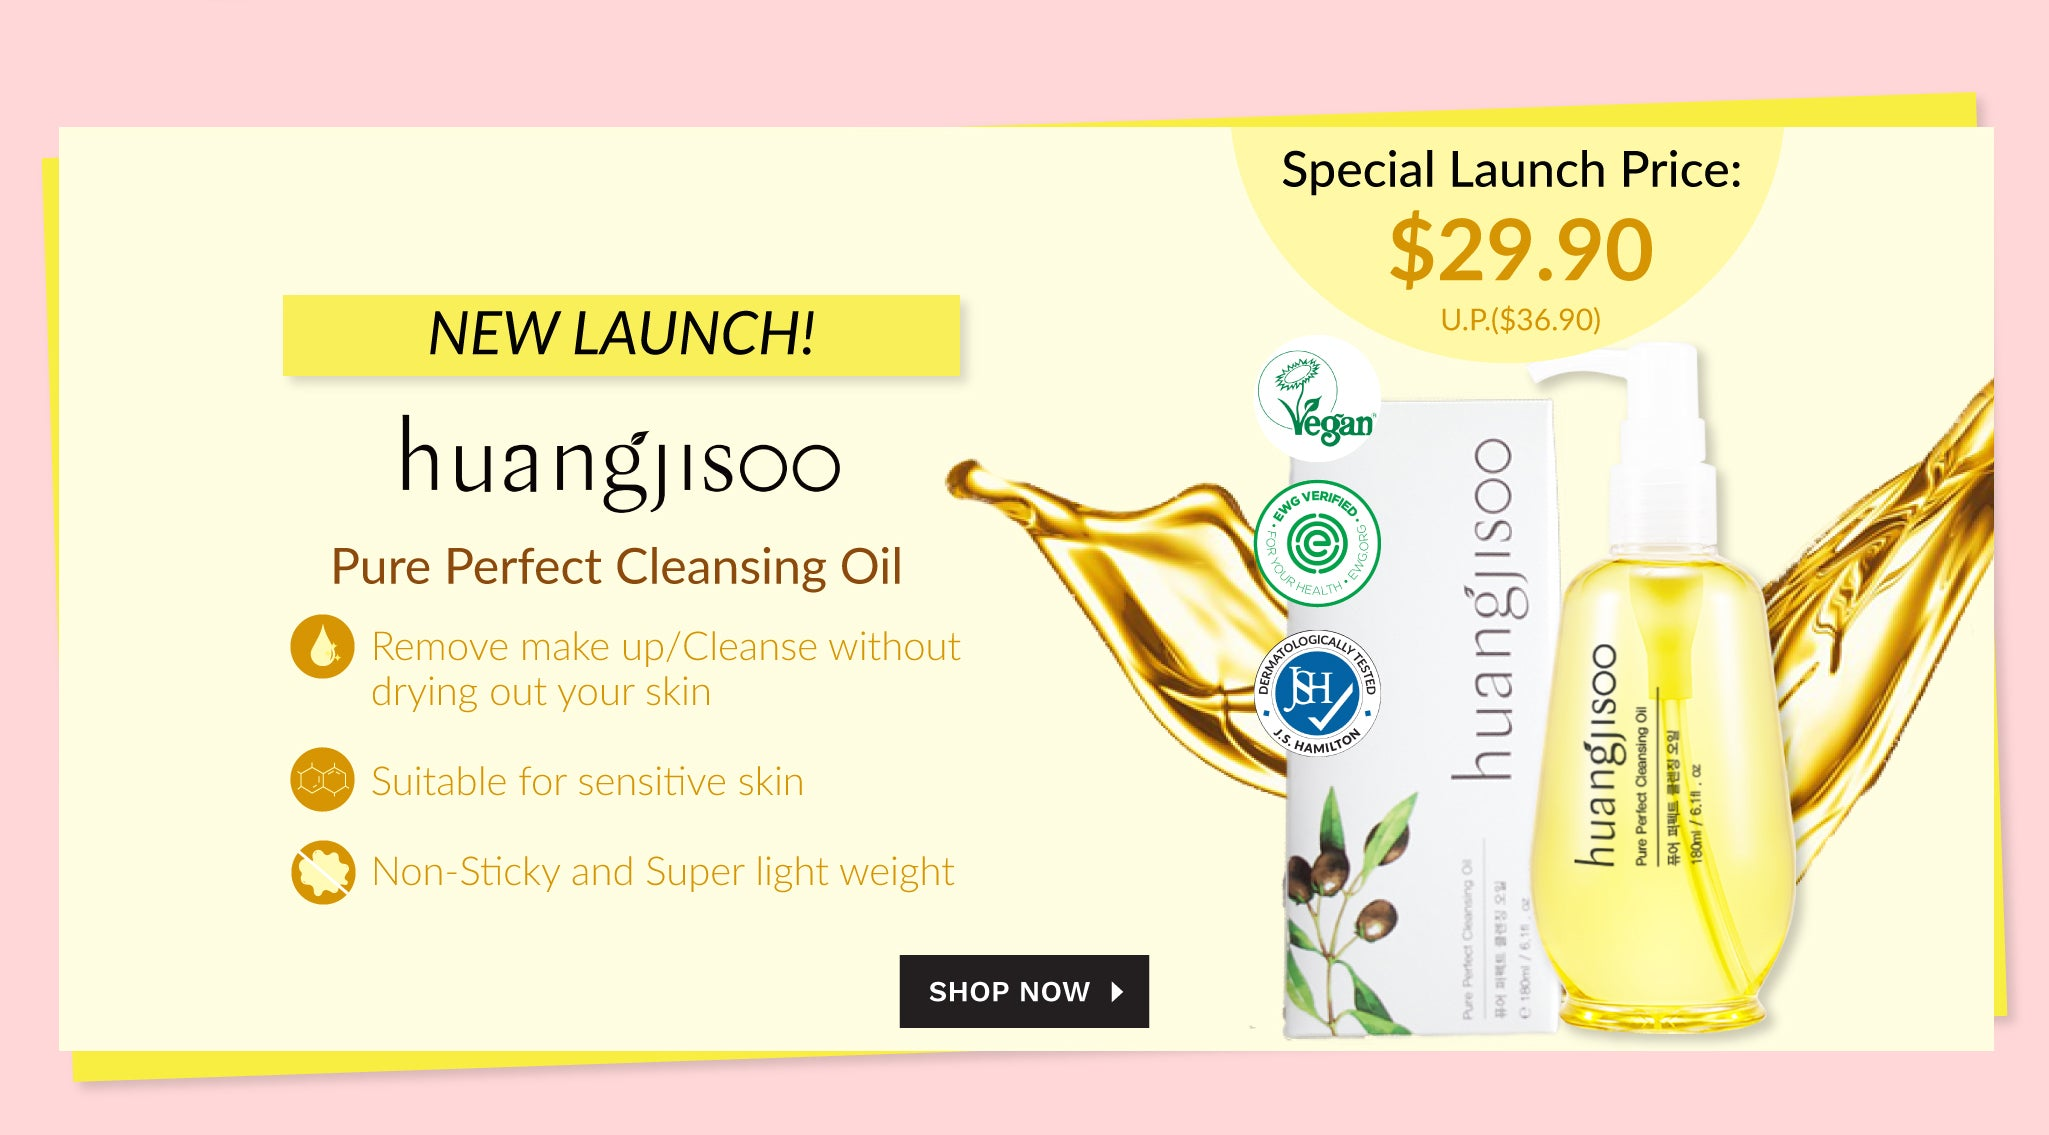 Huangjisoo New Launch! Pure Perfect Cleansing Oil